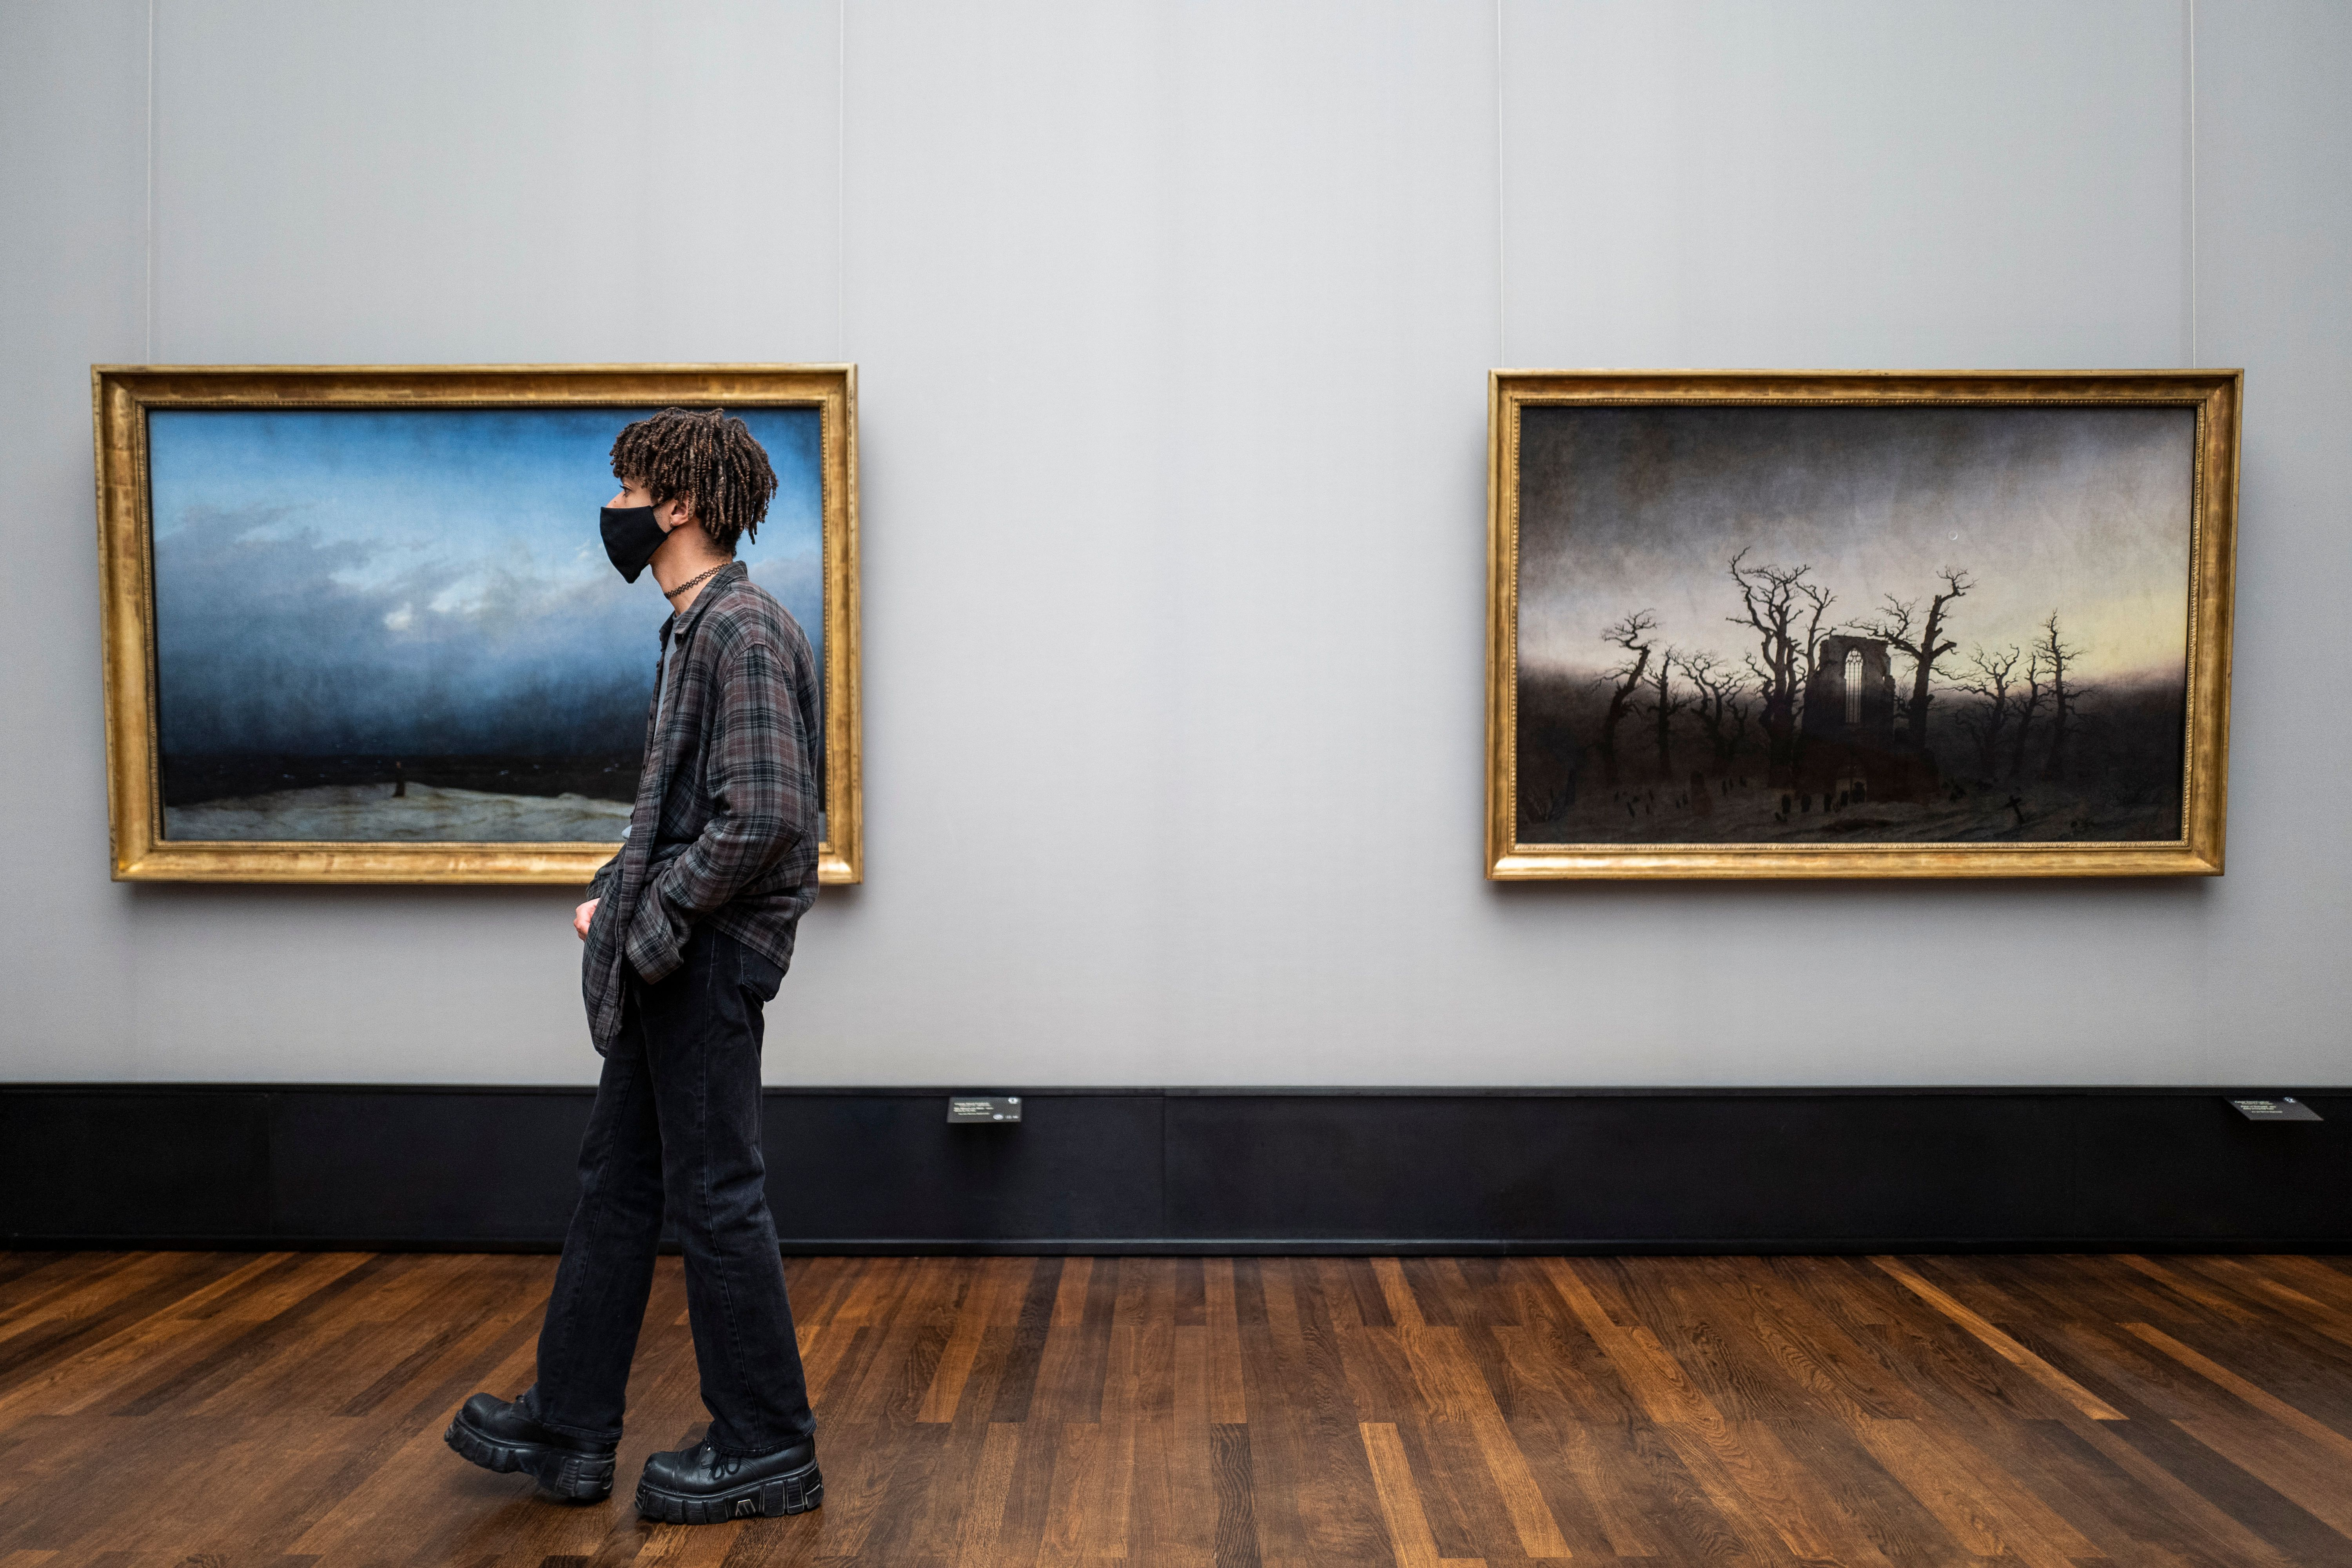 A visitor wearing a face mask walks past two paintings by Caspar David Friedrich at the Alte Nationalgalerie (Old National Gallery) museum in Berlin on May 12, 2020. (Photo by JOHN MACDOUGALL/AFP via Getty Images)